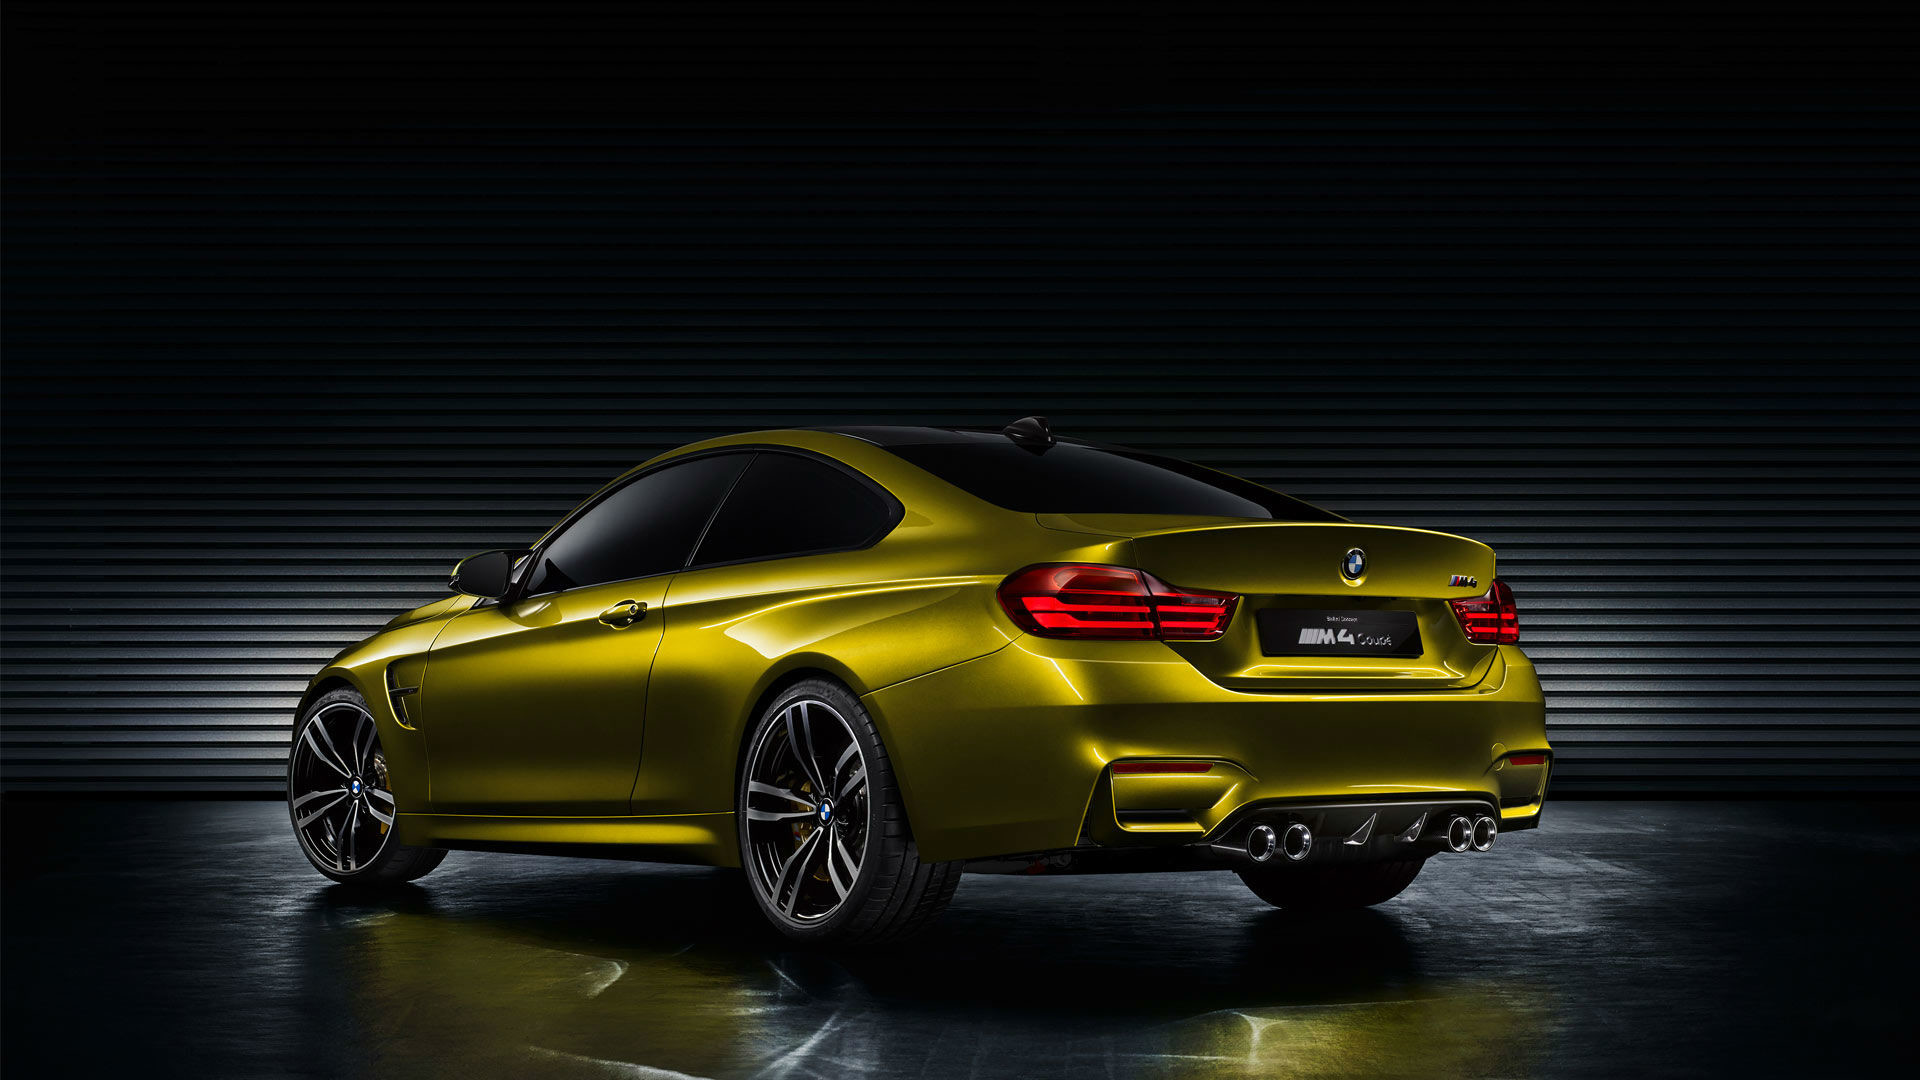 1920x1080 BMW ///M images BMW M4 (Golden) HD wallpaper and background photos